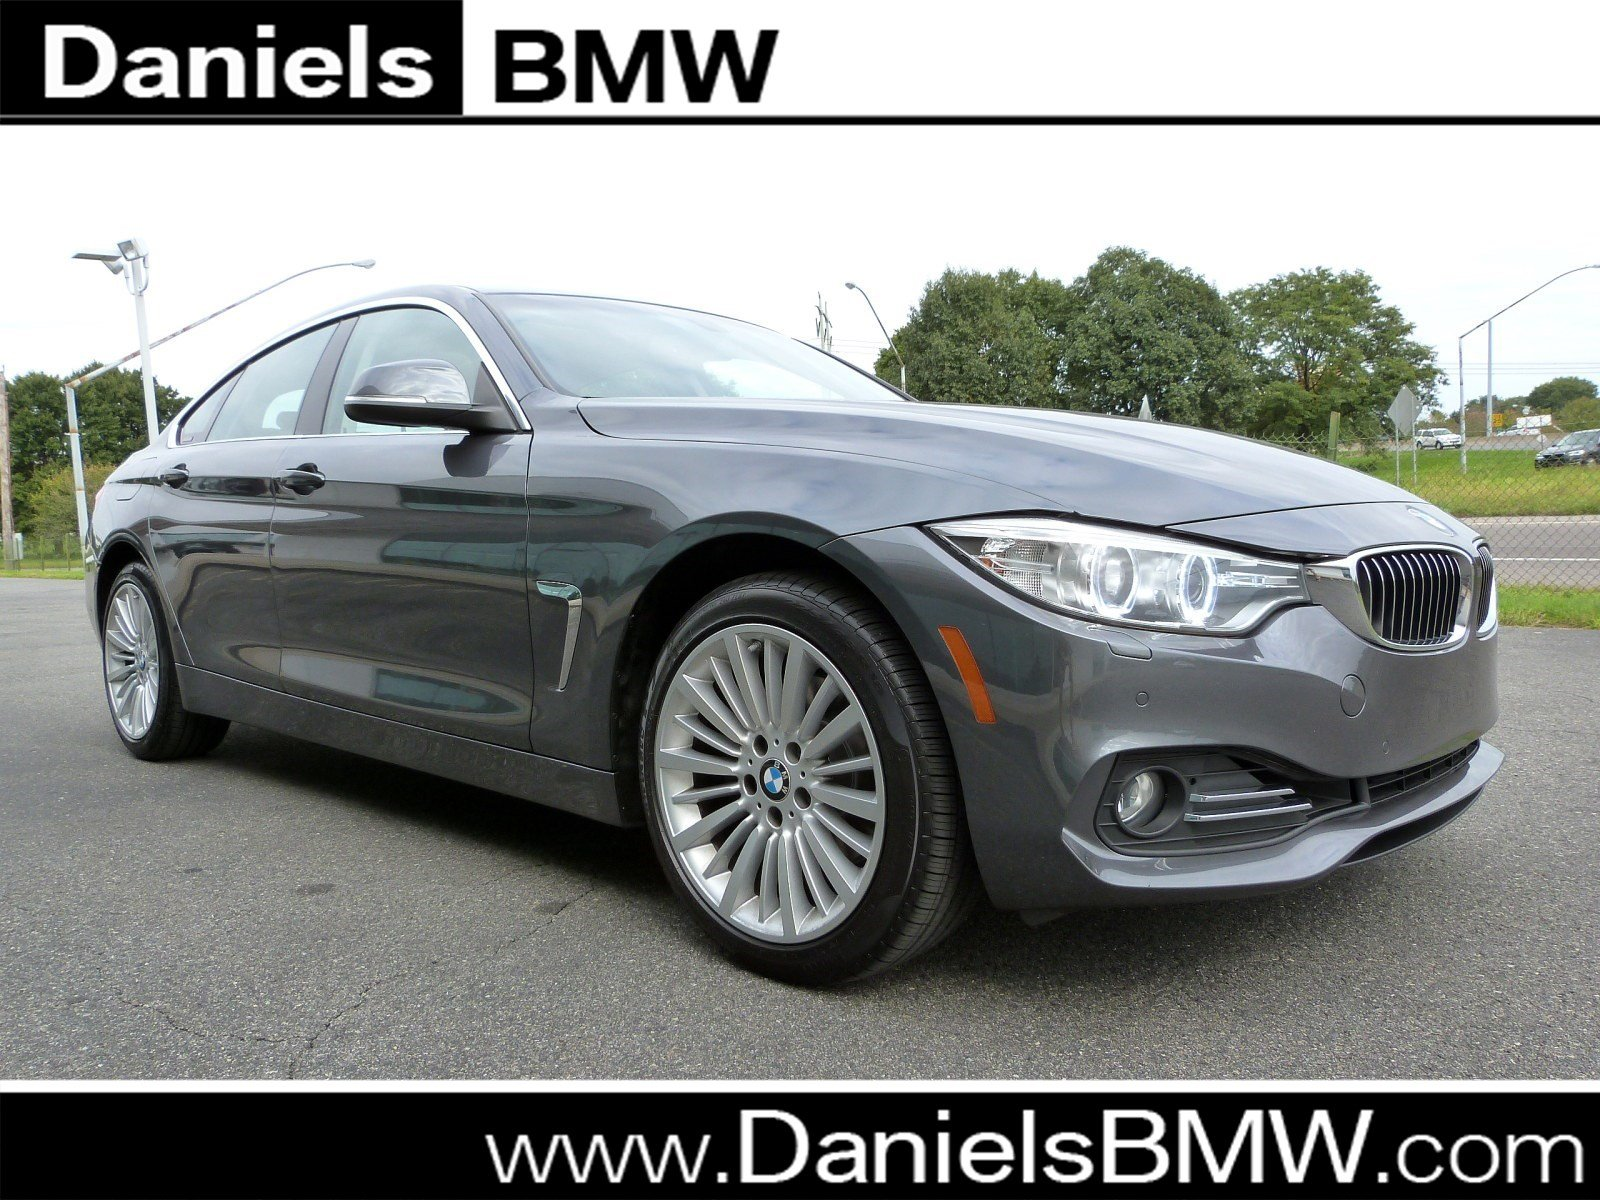 Pre Owned 2015 BMW 4 Series 428i xDrive Hatchback in Allentown